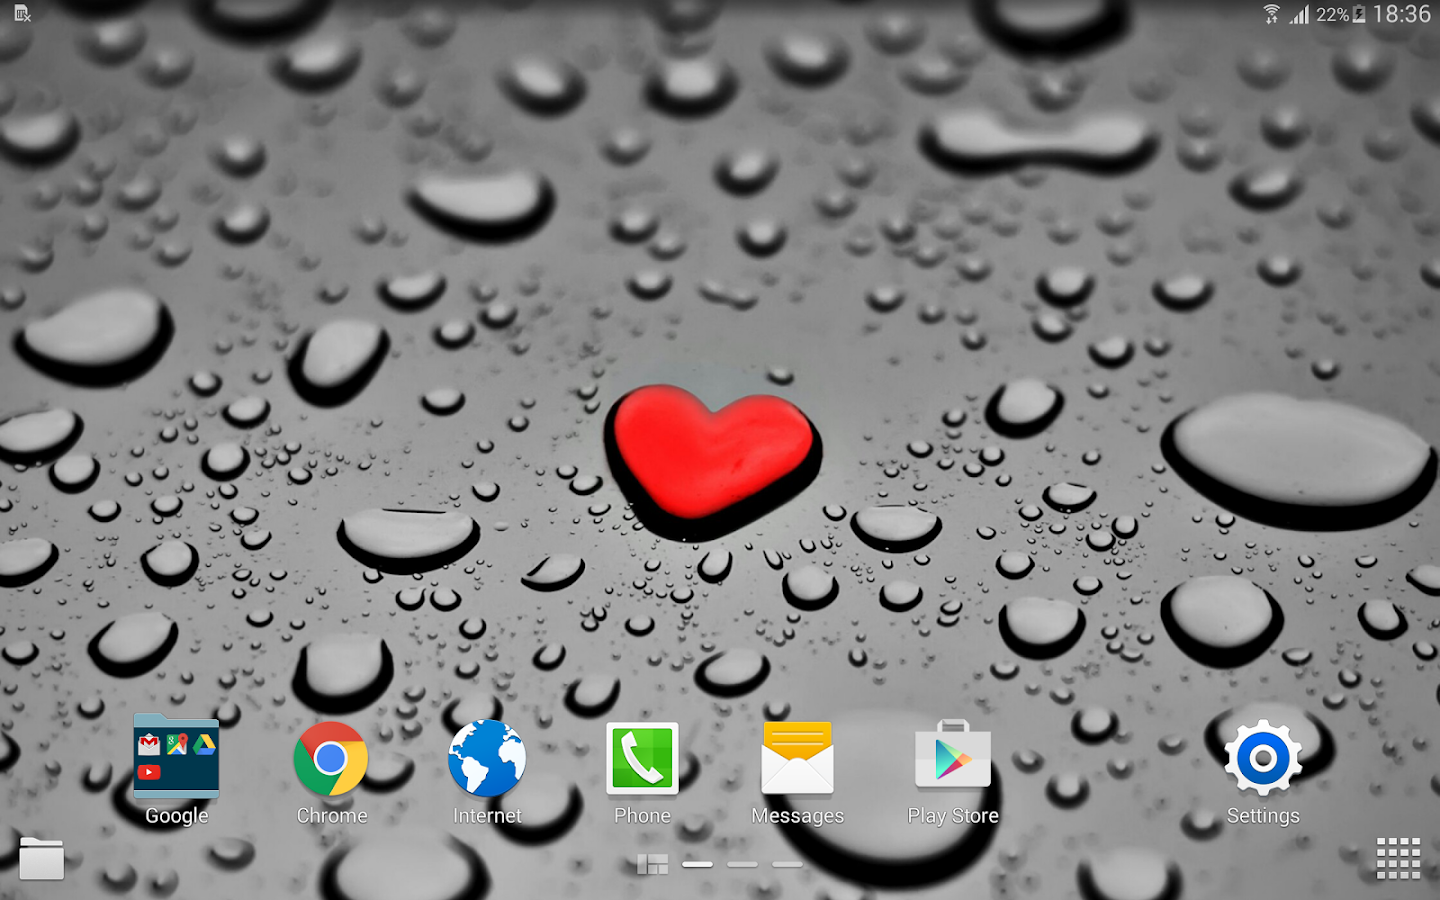 Love Wallpapers Ultra Hd : Liebe Hintergrundbild 4k Android-Apps auf Google Play